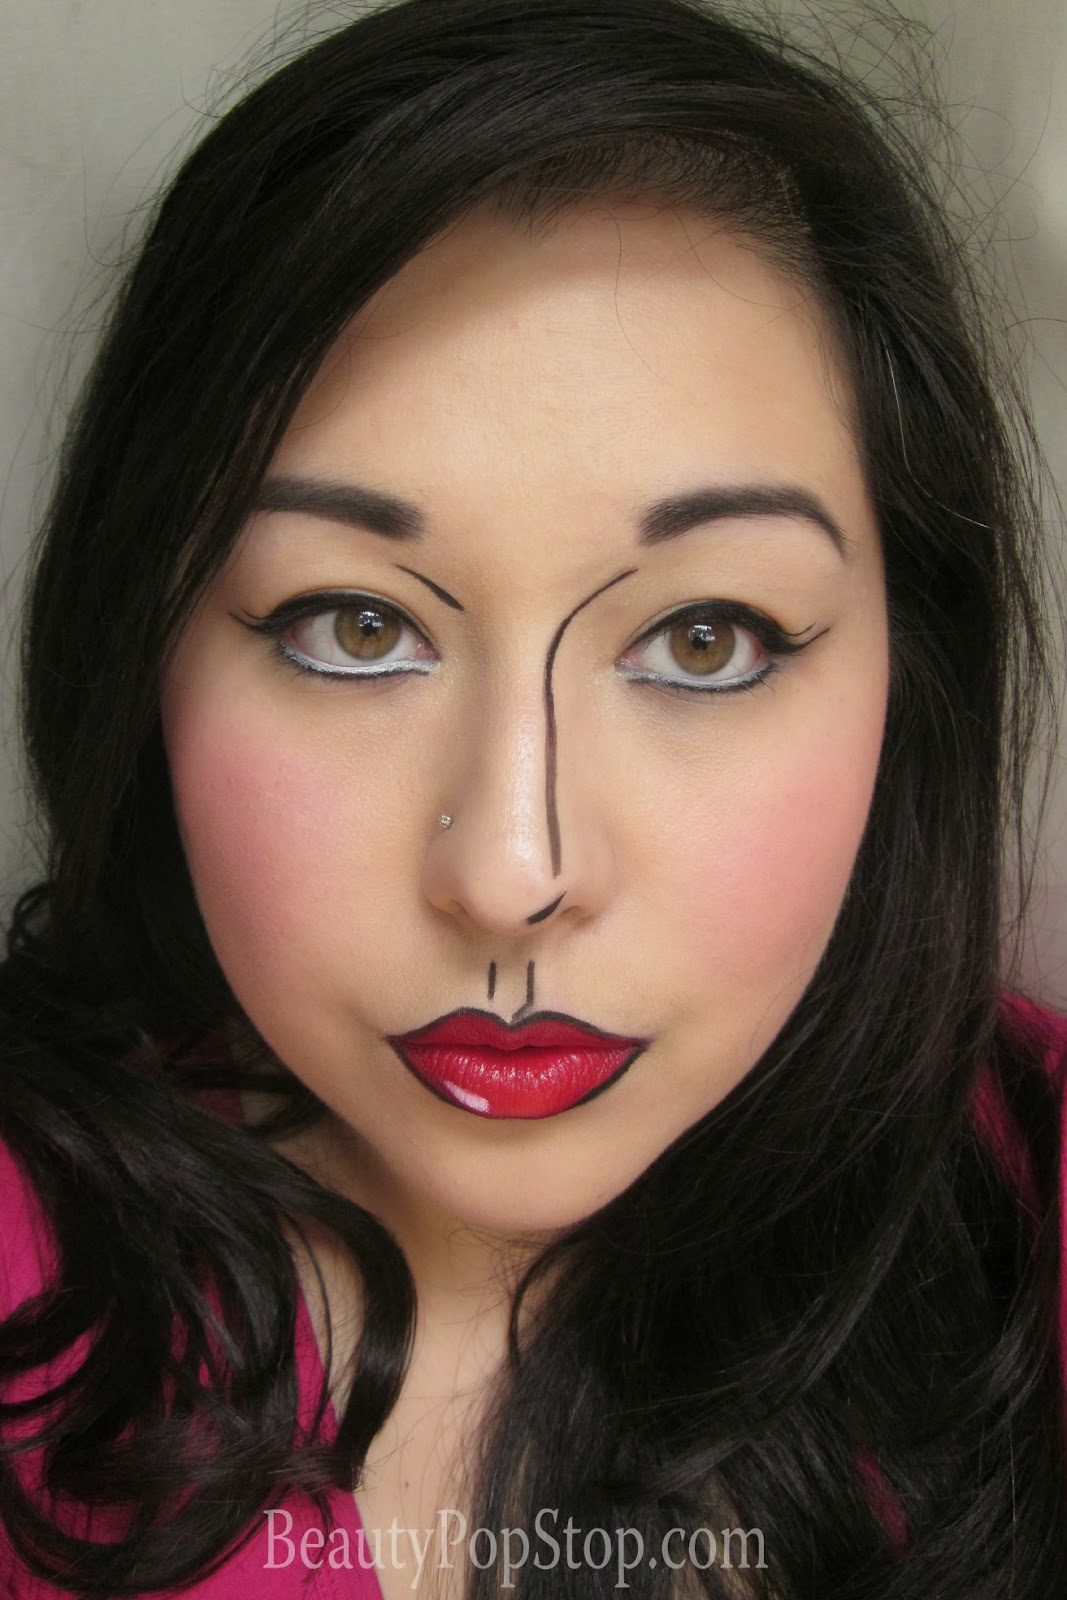 BeautyPopStop: Halloween Pop Art Lichtenstein Inspired Makeup Look